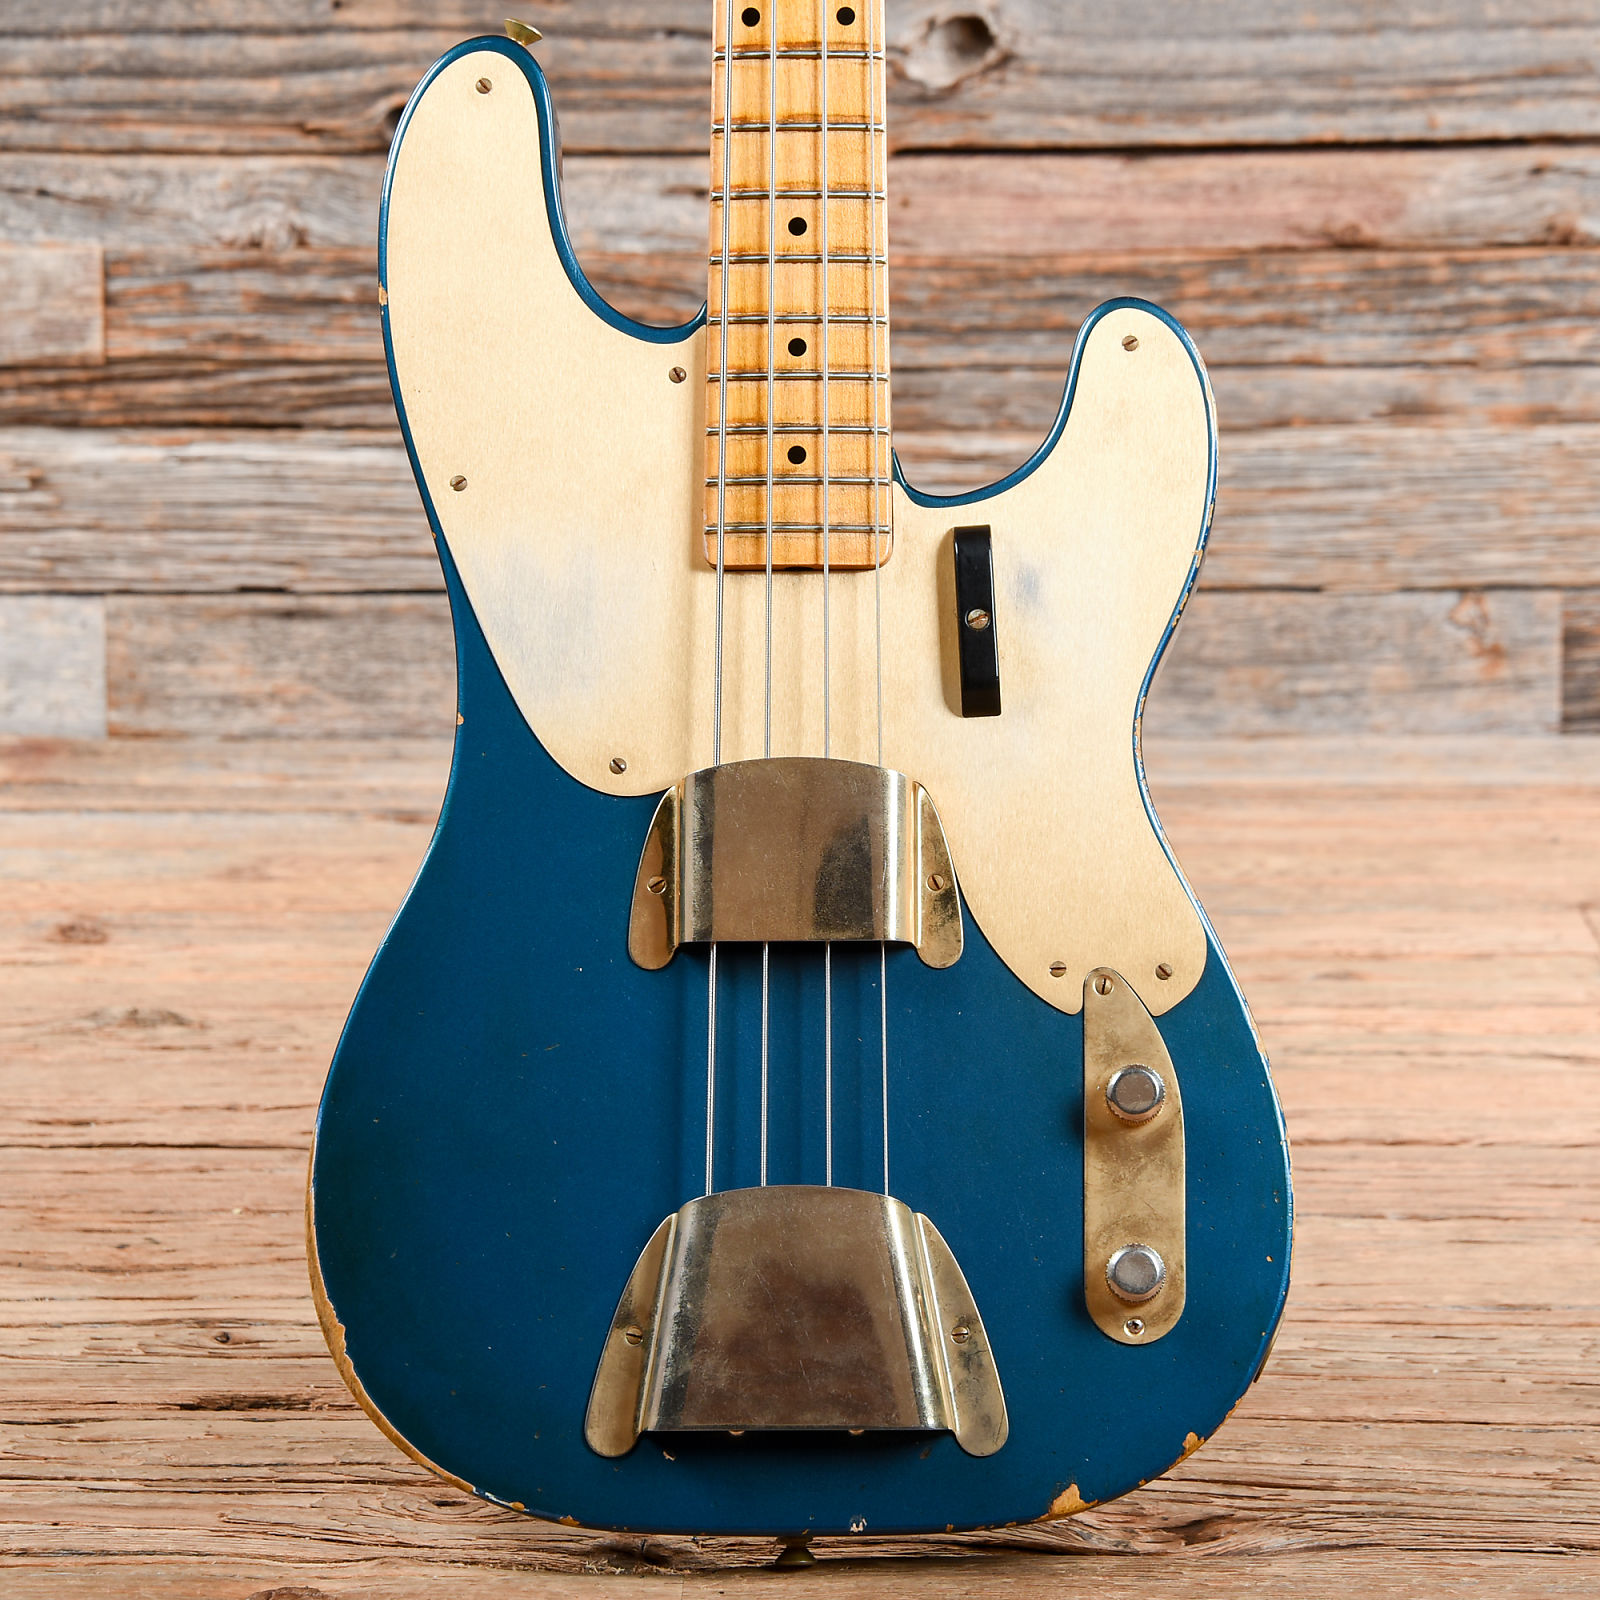 98374b5a3f0 Fender Custom Shop 1951 Precision Bass Lake Placid Blue 2013 ...